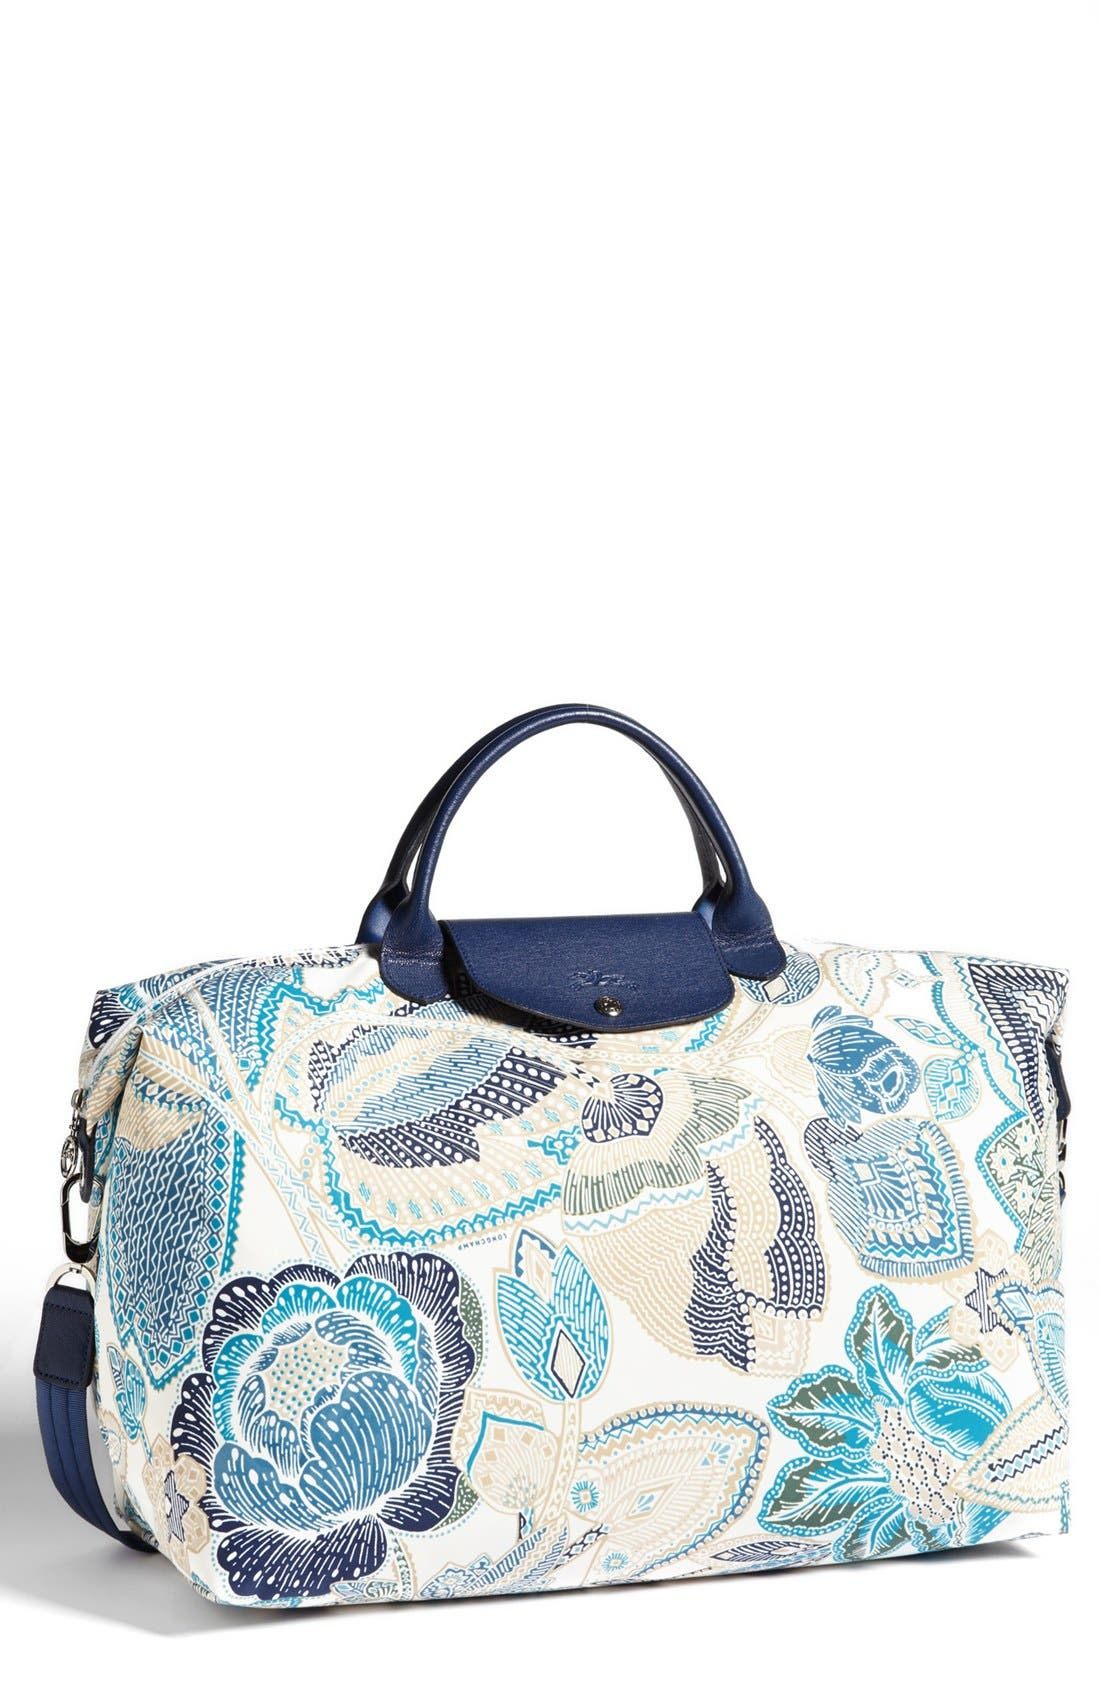 'Fleurs de Ravello' Travel Bag,                         Main,                         color, Indigo